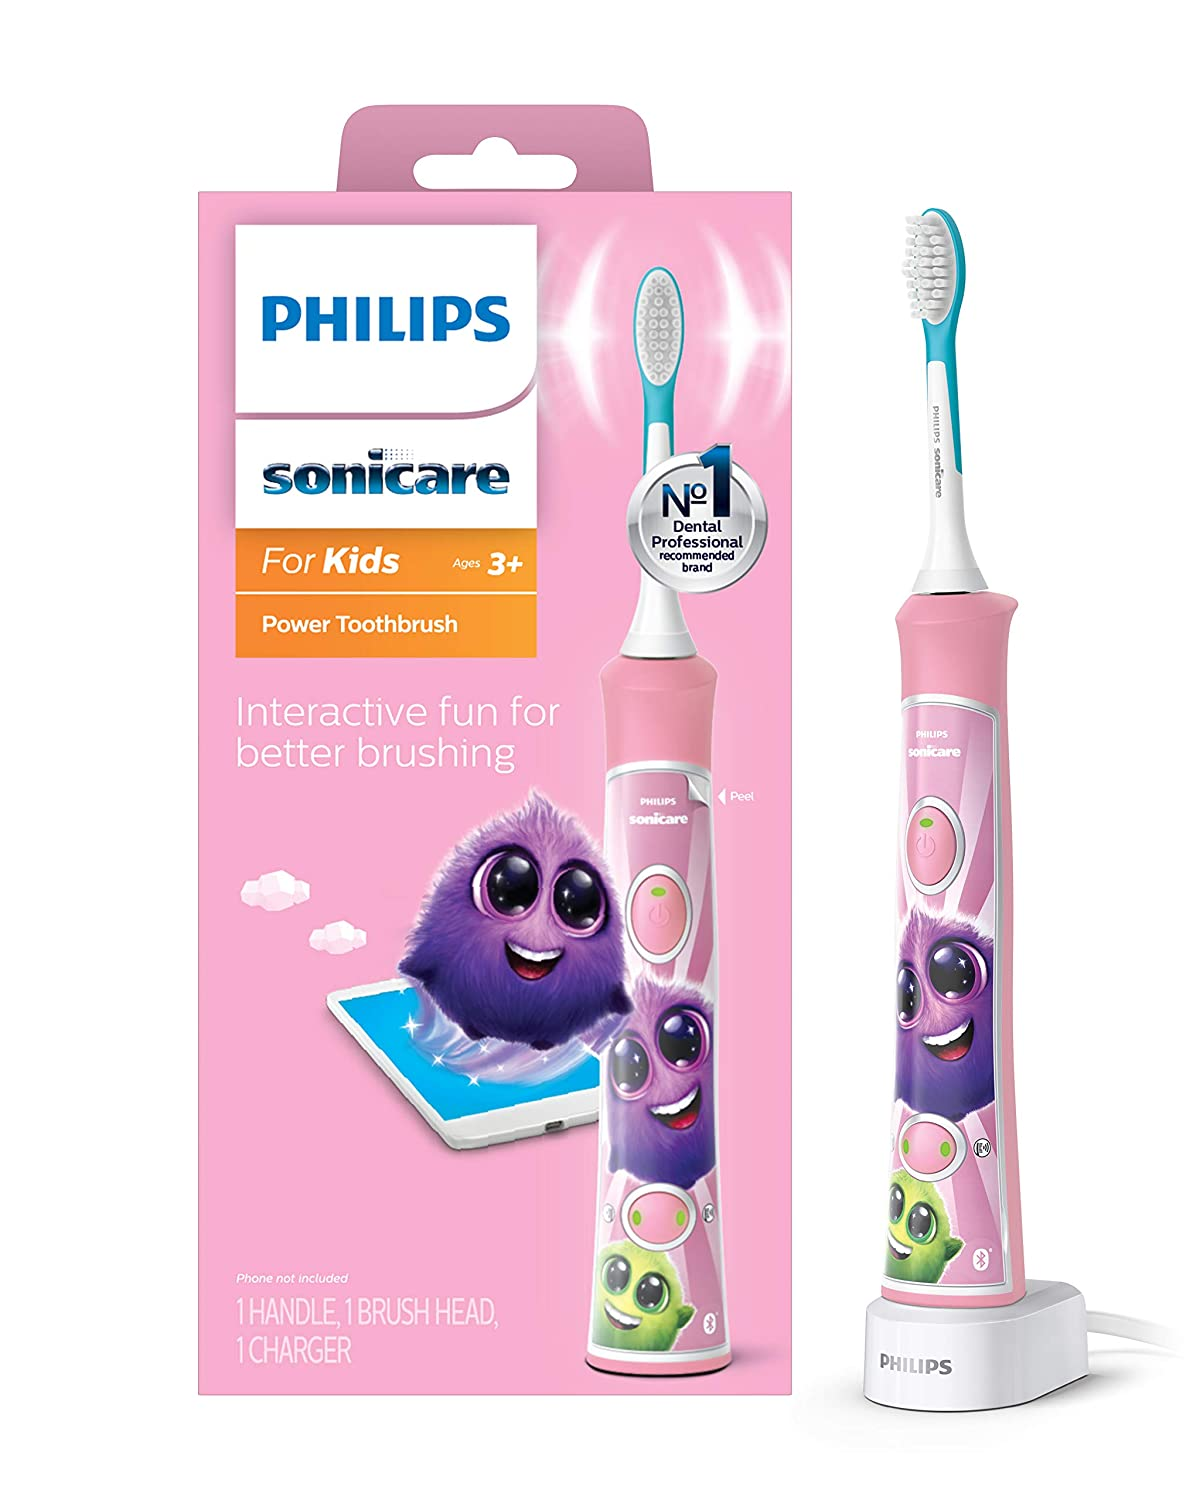 Philips Sonicare, for Kids Bluetooth Connected Rechargeable Electric Toothbrush, Pink,